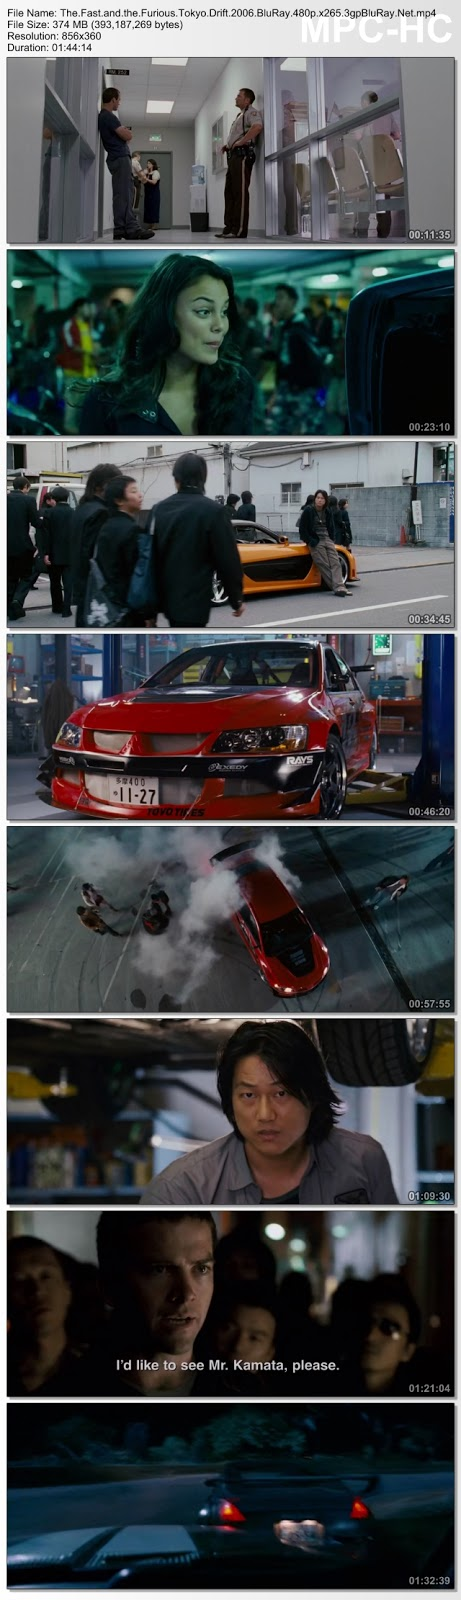 Screenshots Download The.Fast.and.the.Furious.Tokyo.Drift.2006.BluRay.480p.x265.3gpBluRay.Net.mp4